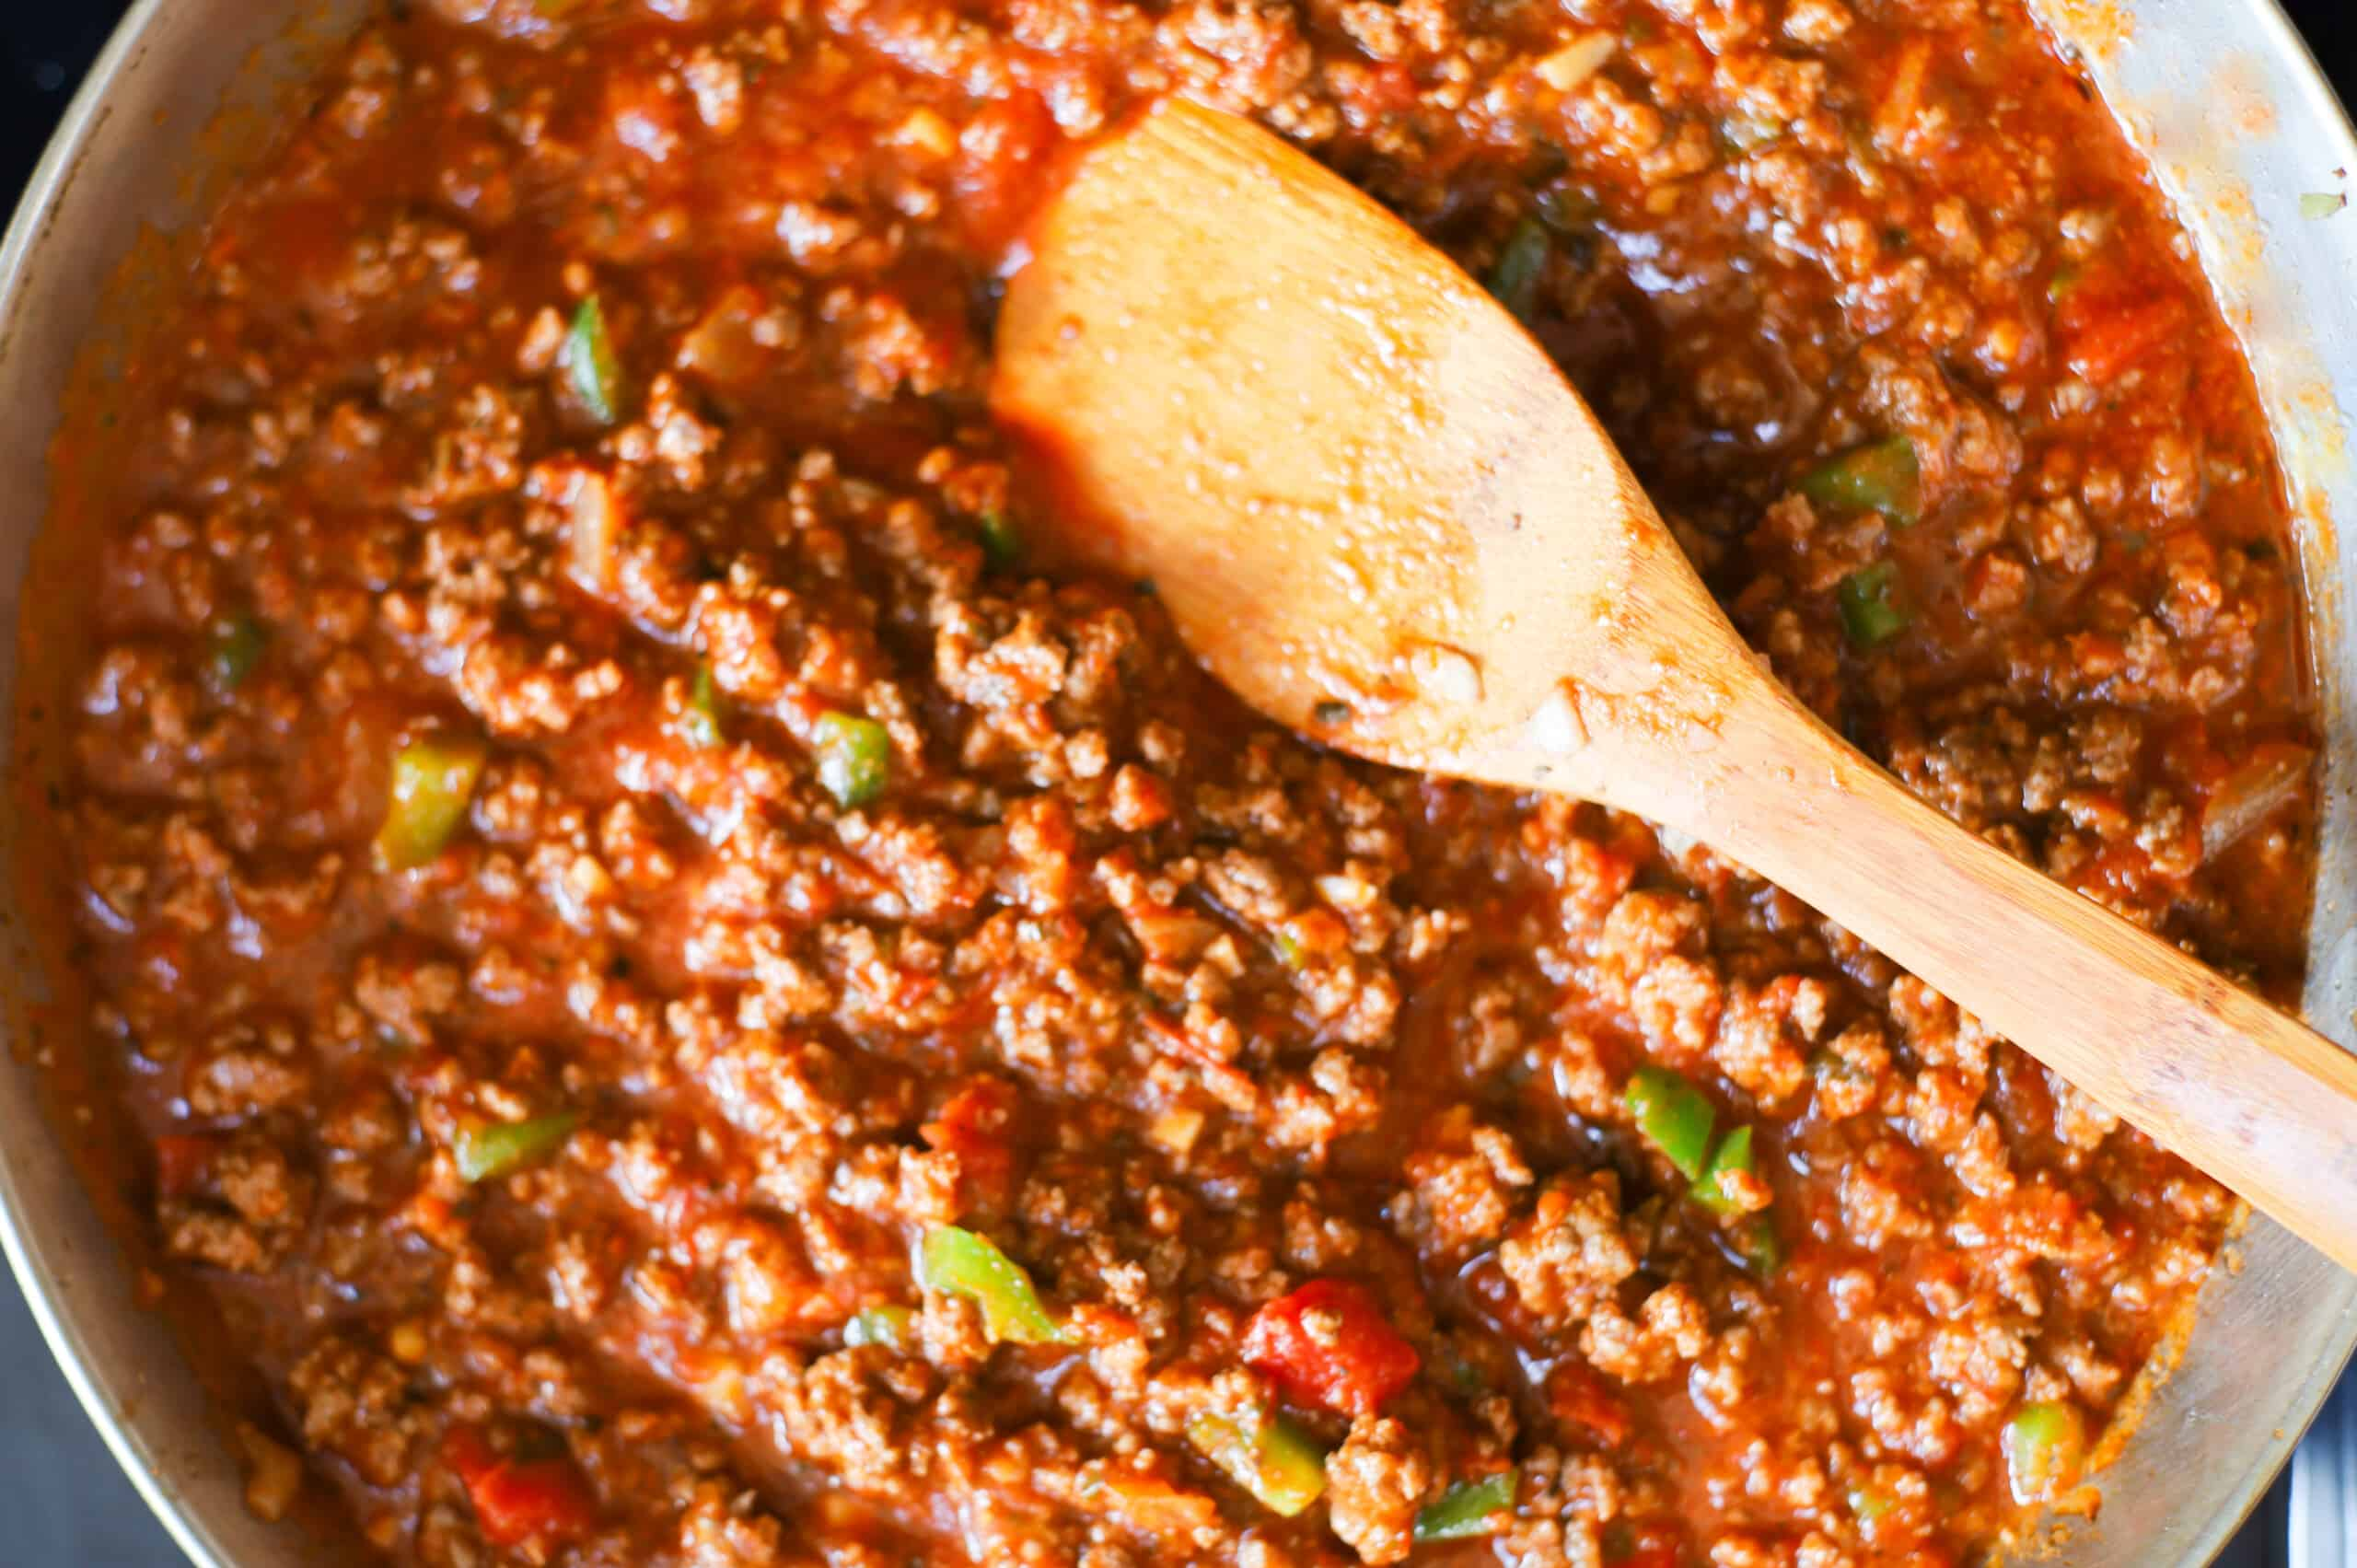 Old Fashioned Sloppy Joe sauce in the pan